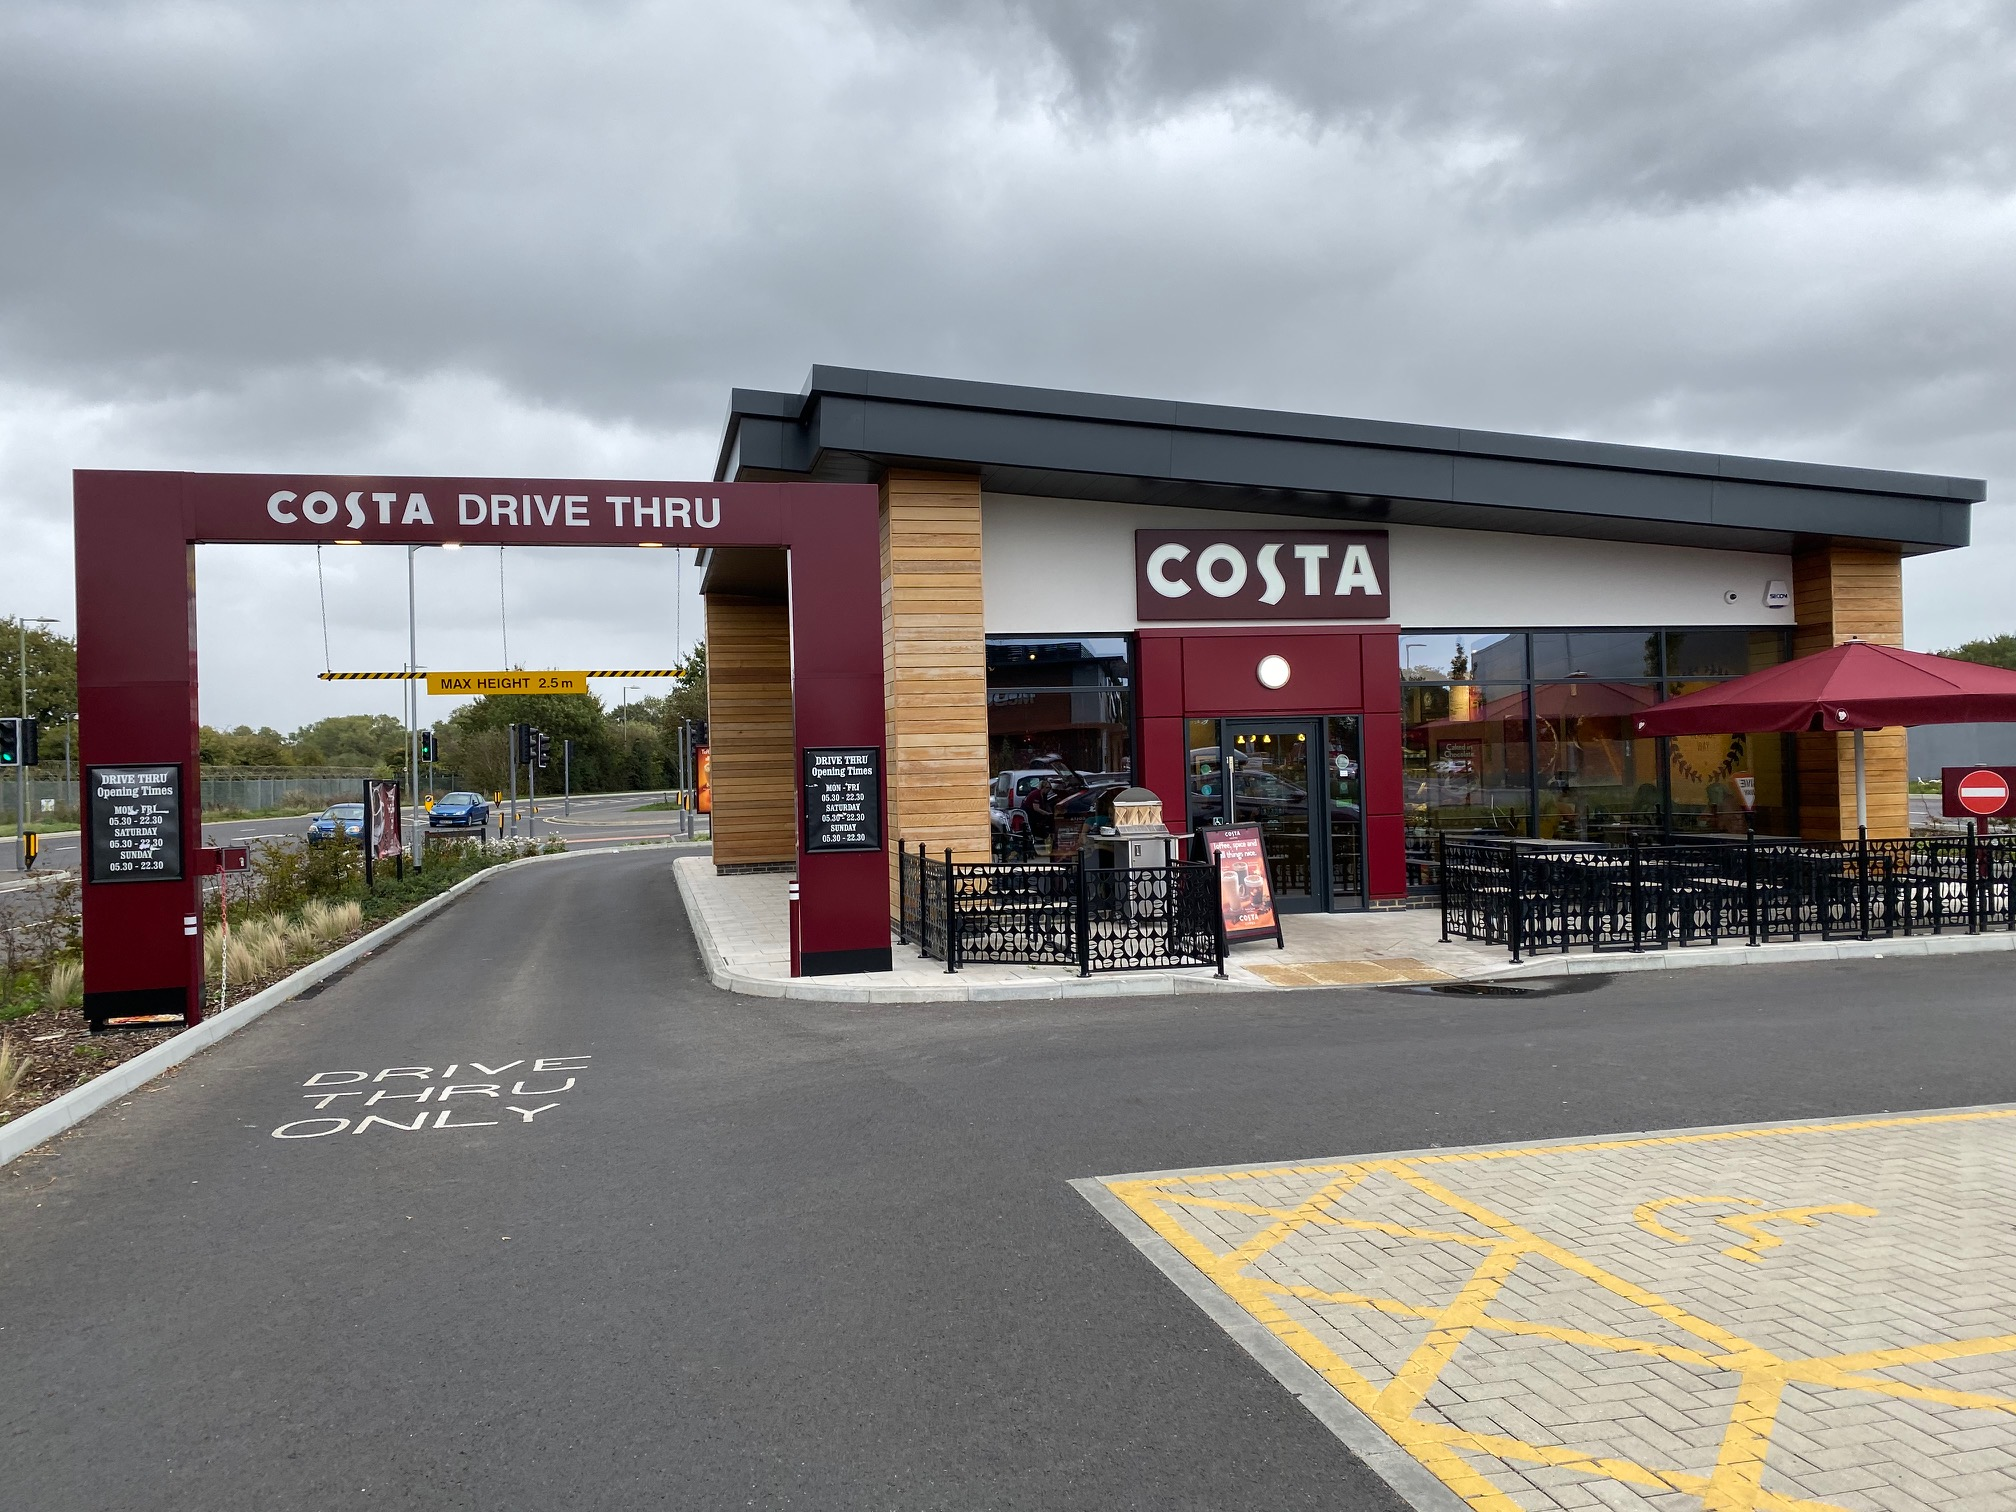 Costa at Brockhurst Gate